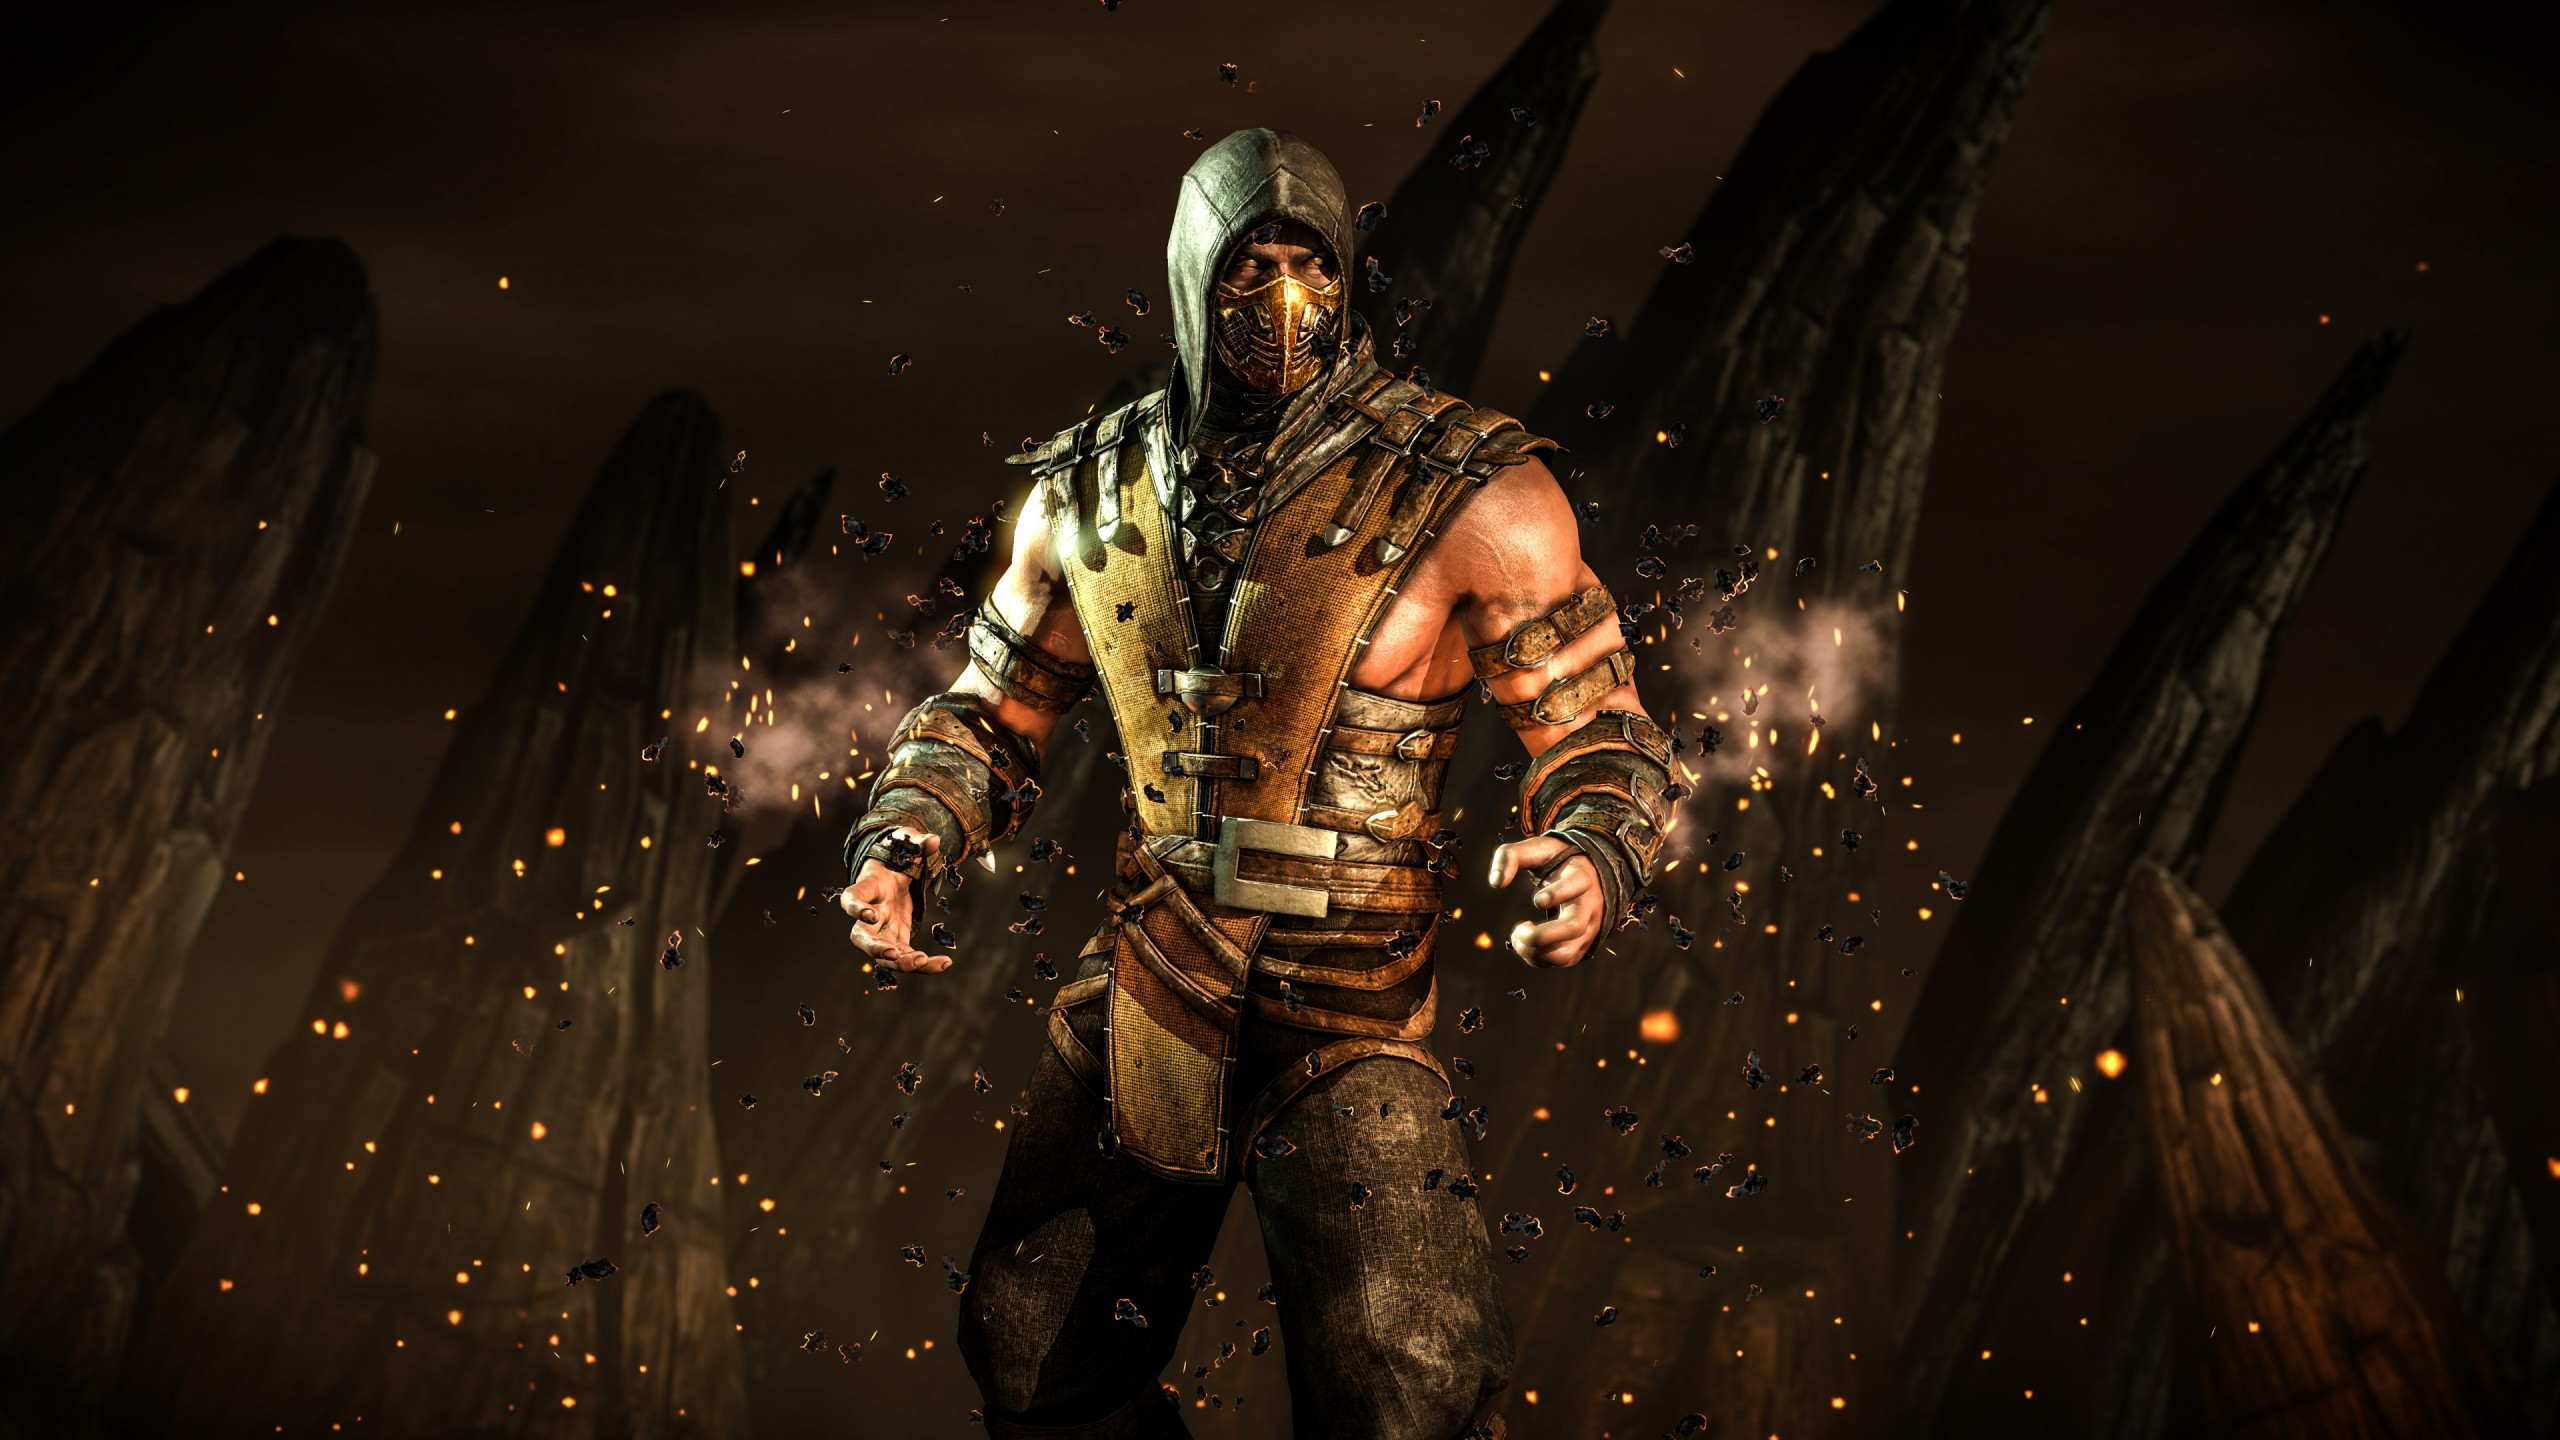 Mortal Kombat X Scorpio 3d Cool Video Games Wallpapers: Wallpaper MORTAL KOMBAT X, Scorpion, Fighting, PS4, Xbox